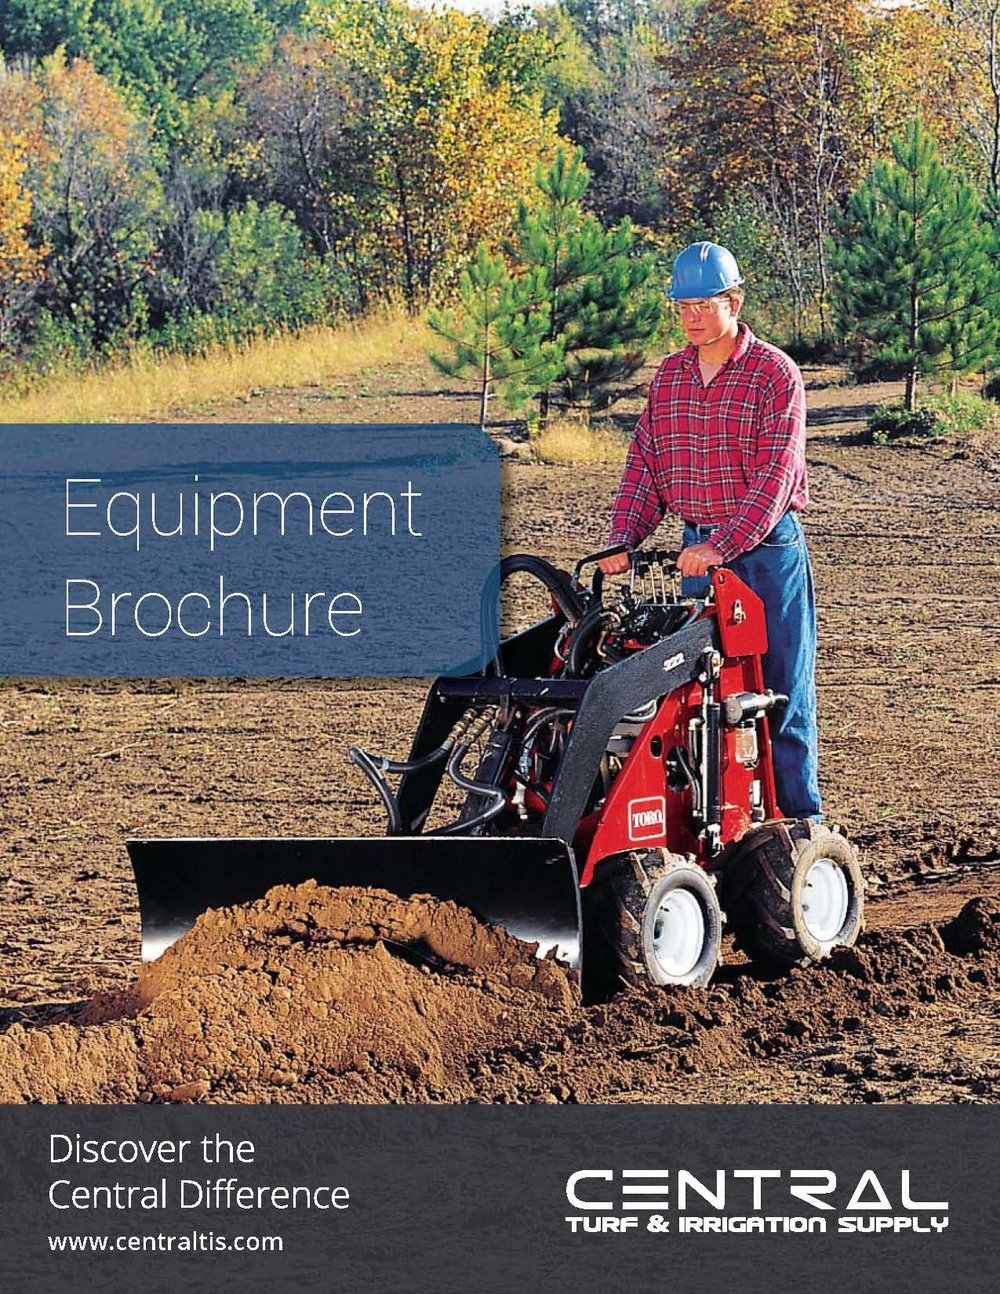 2015 Equipment Brochure 1.3_Page_1.jpg